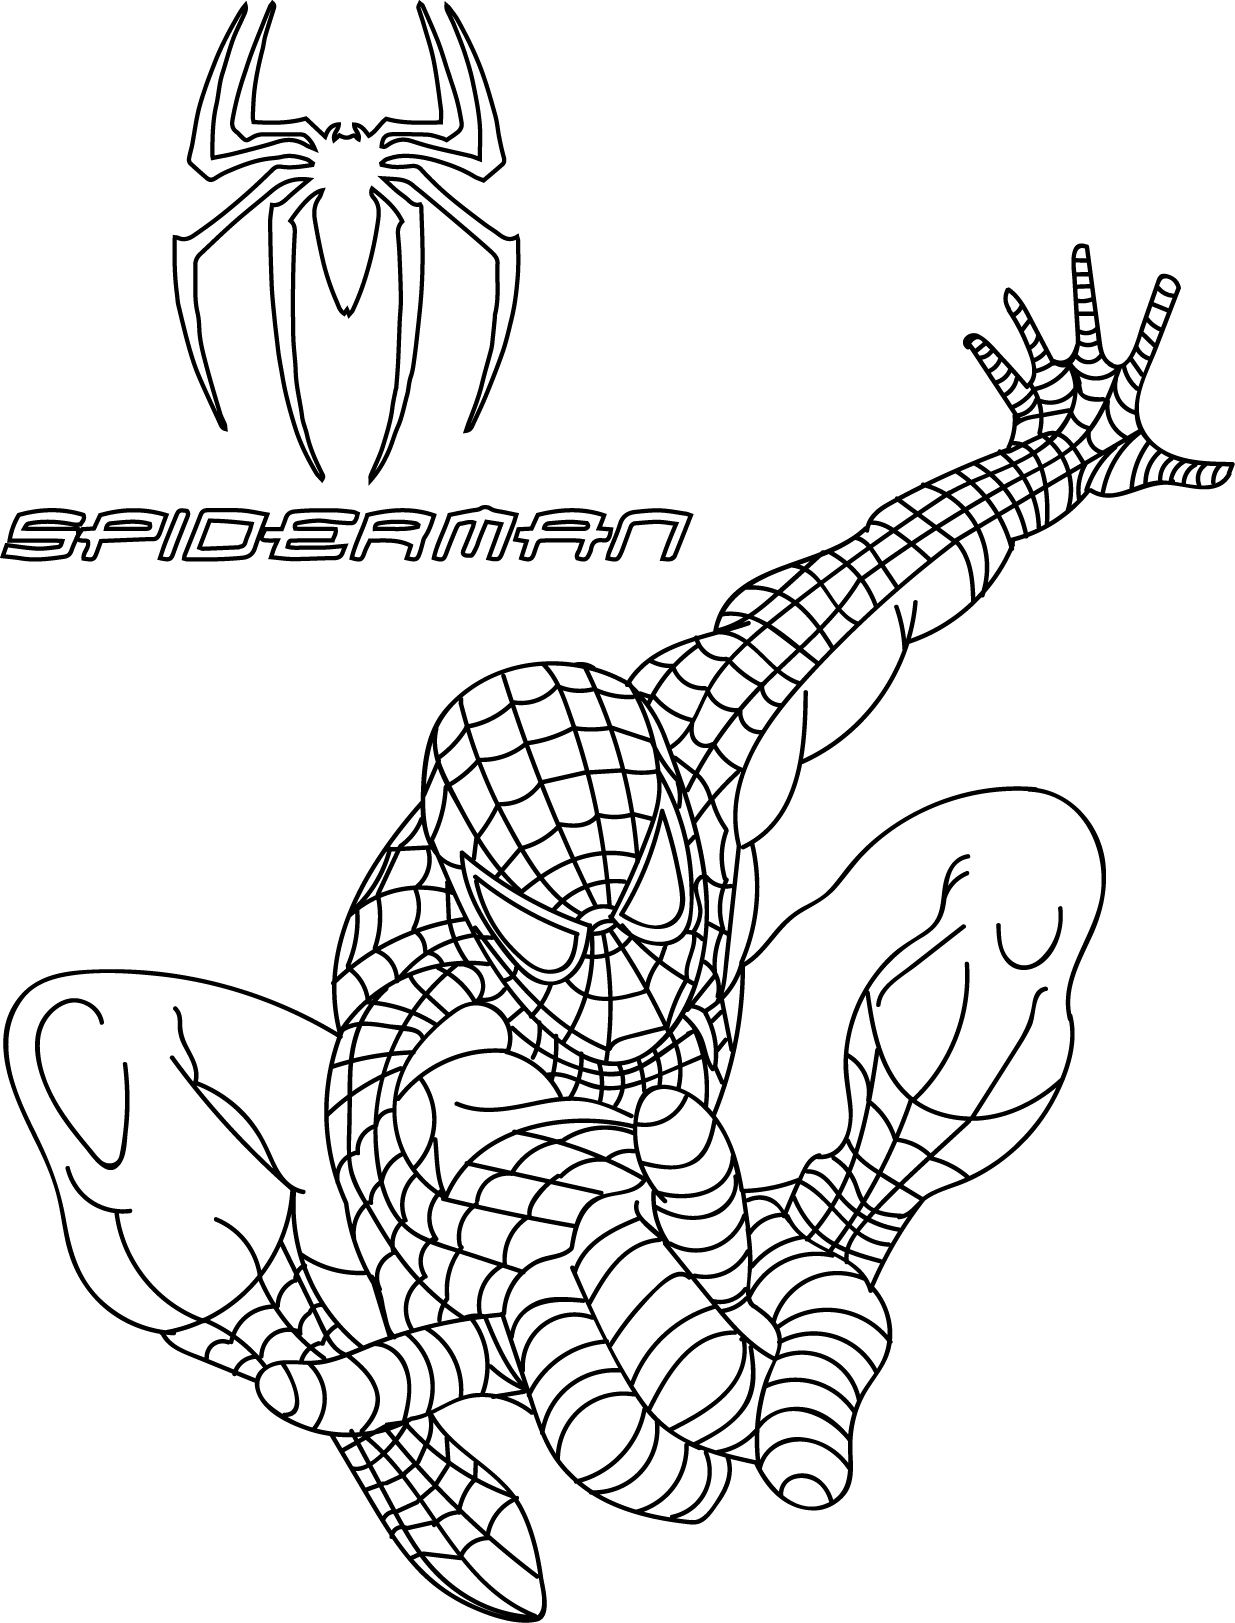 Spider Man Catch Coloring Page 2 B Sorted